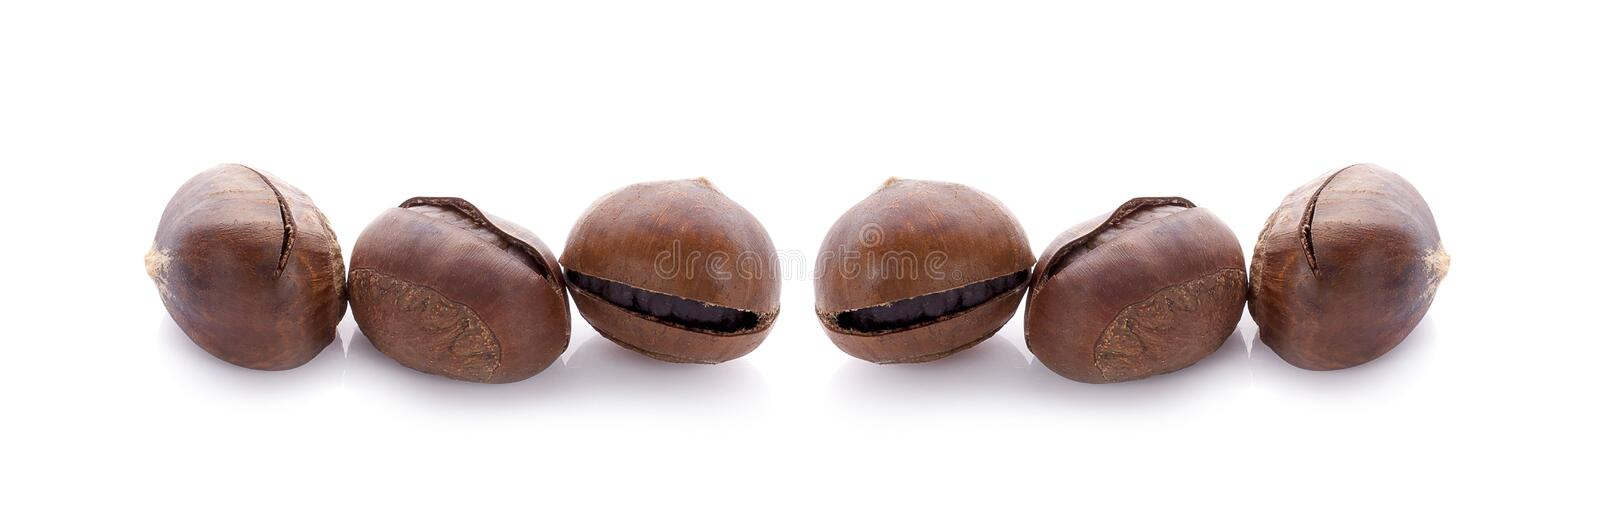 Chestnuts an isolated on white background.  royalty free stock photo